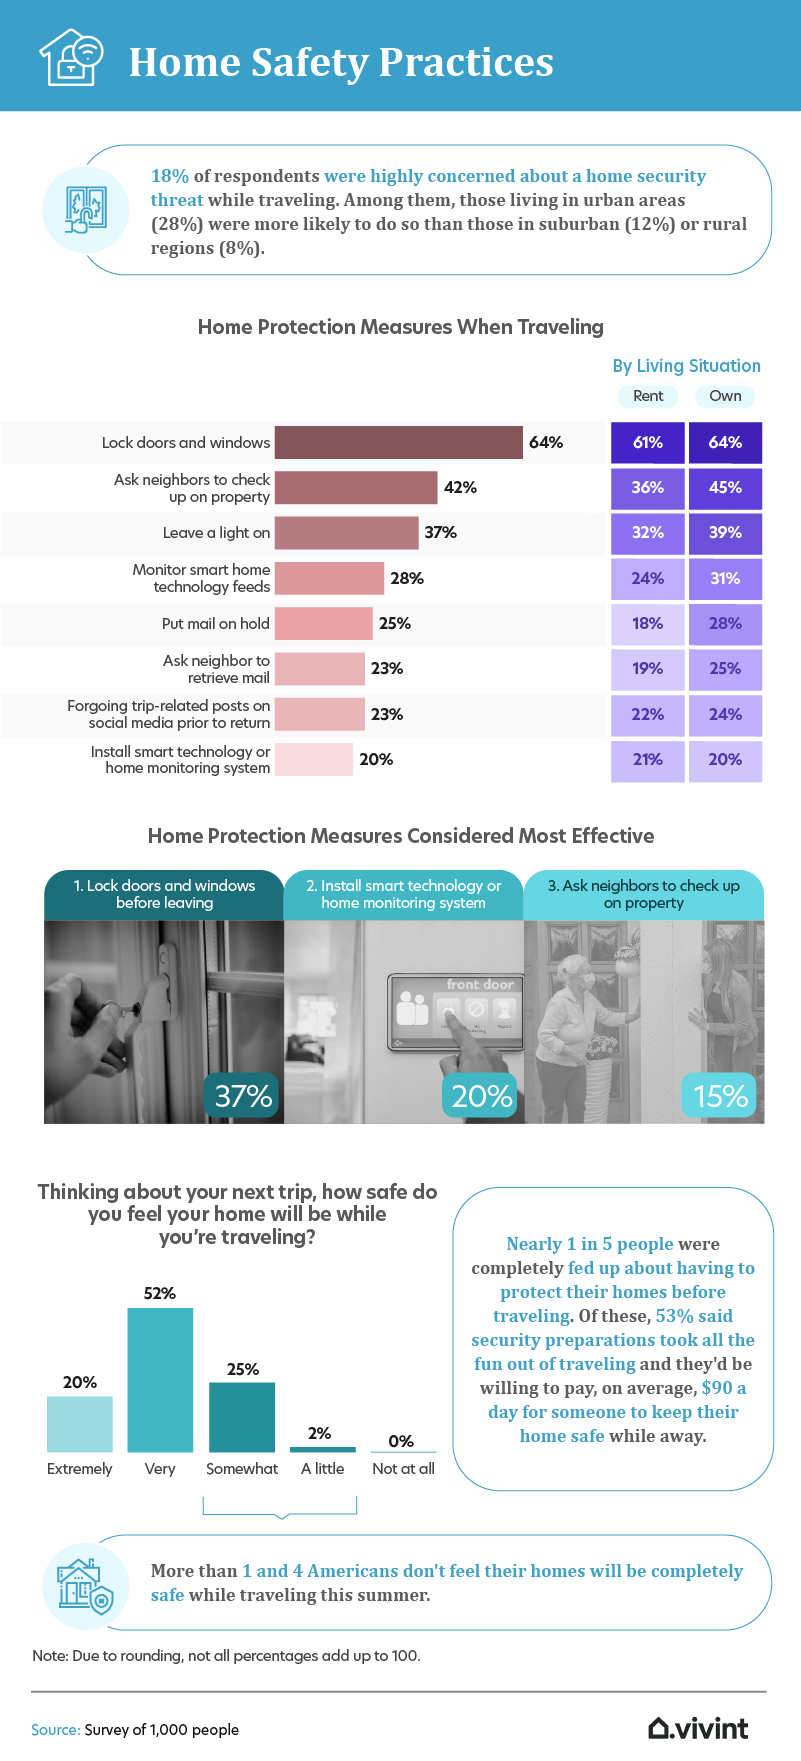 home safety practices infographic